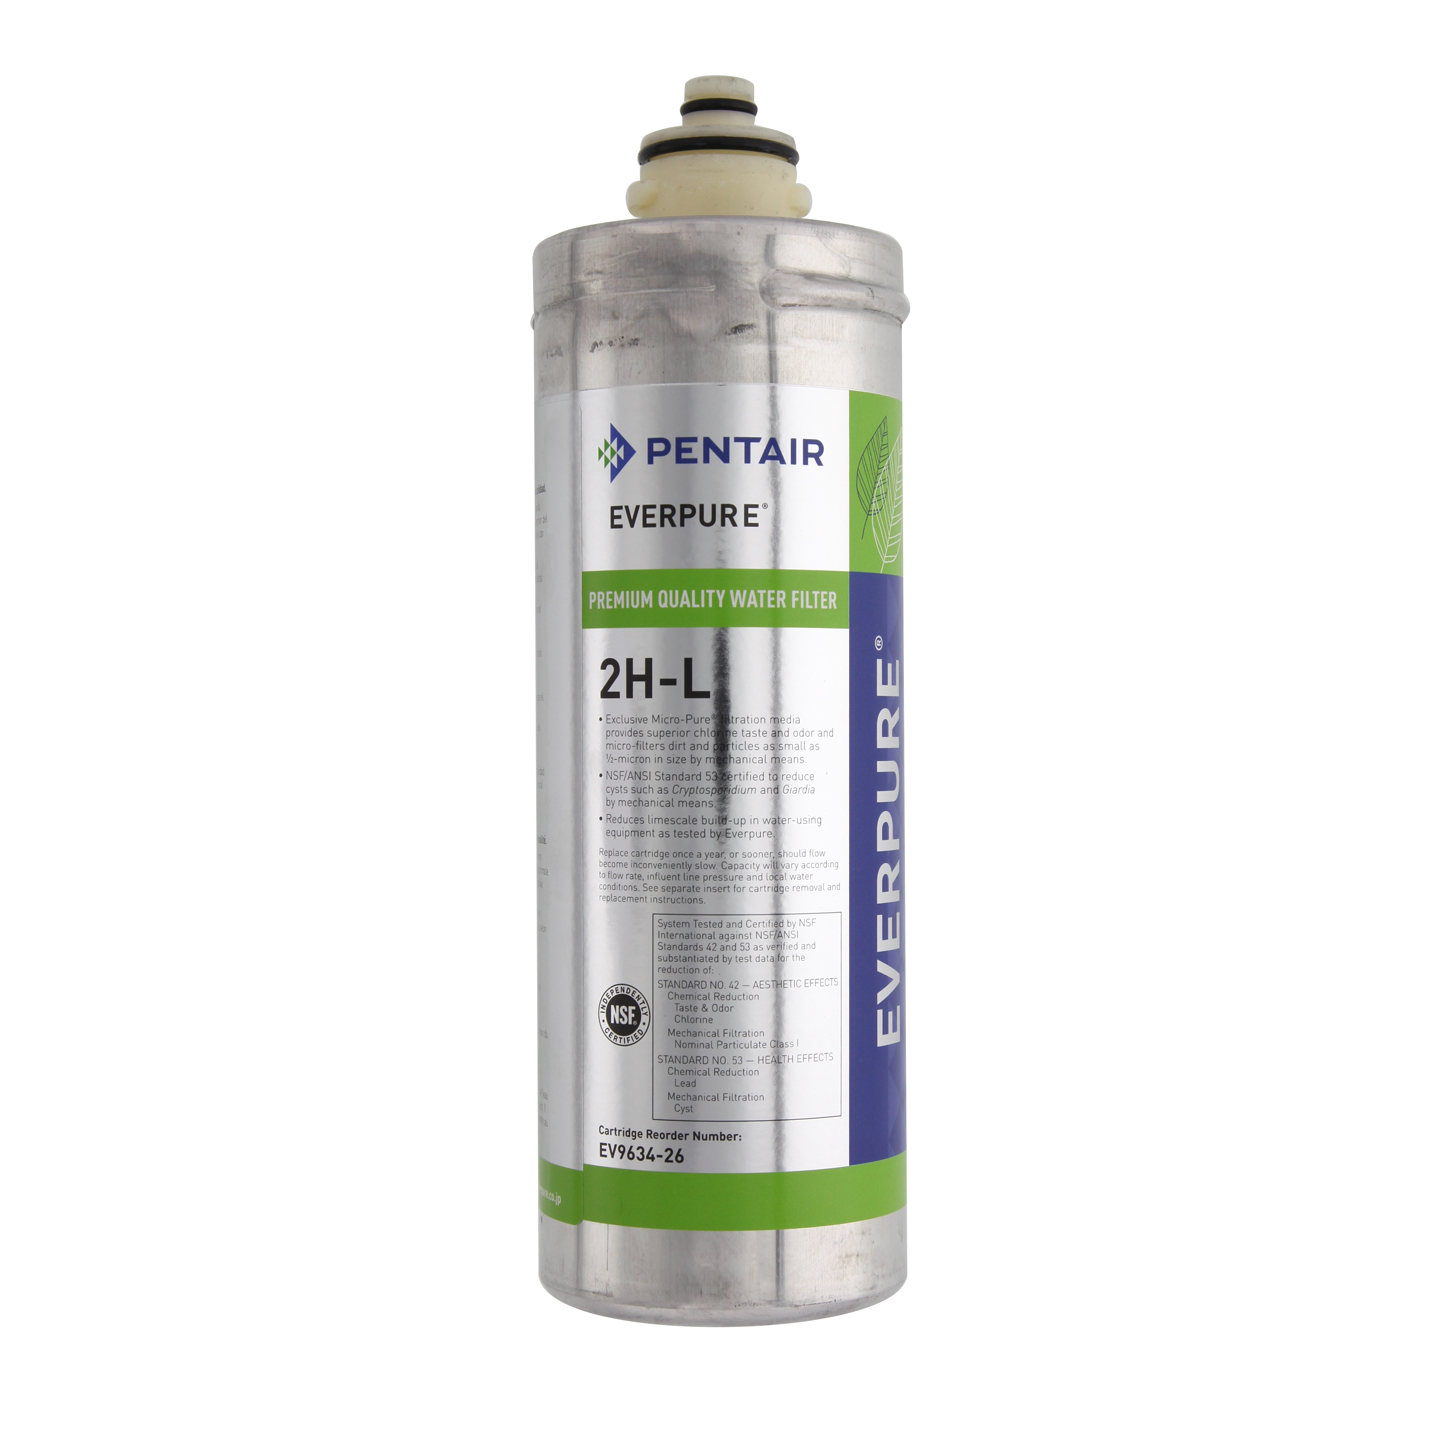 Everpure upc barcode for Everpure h300nxt